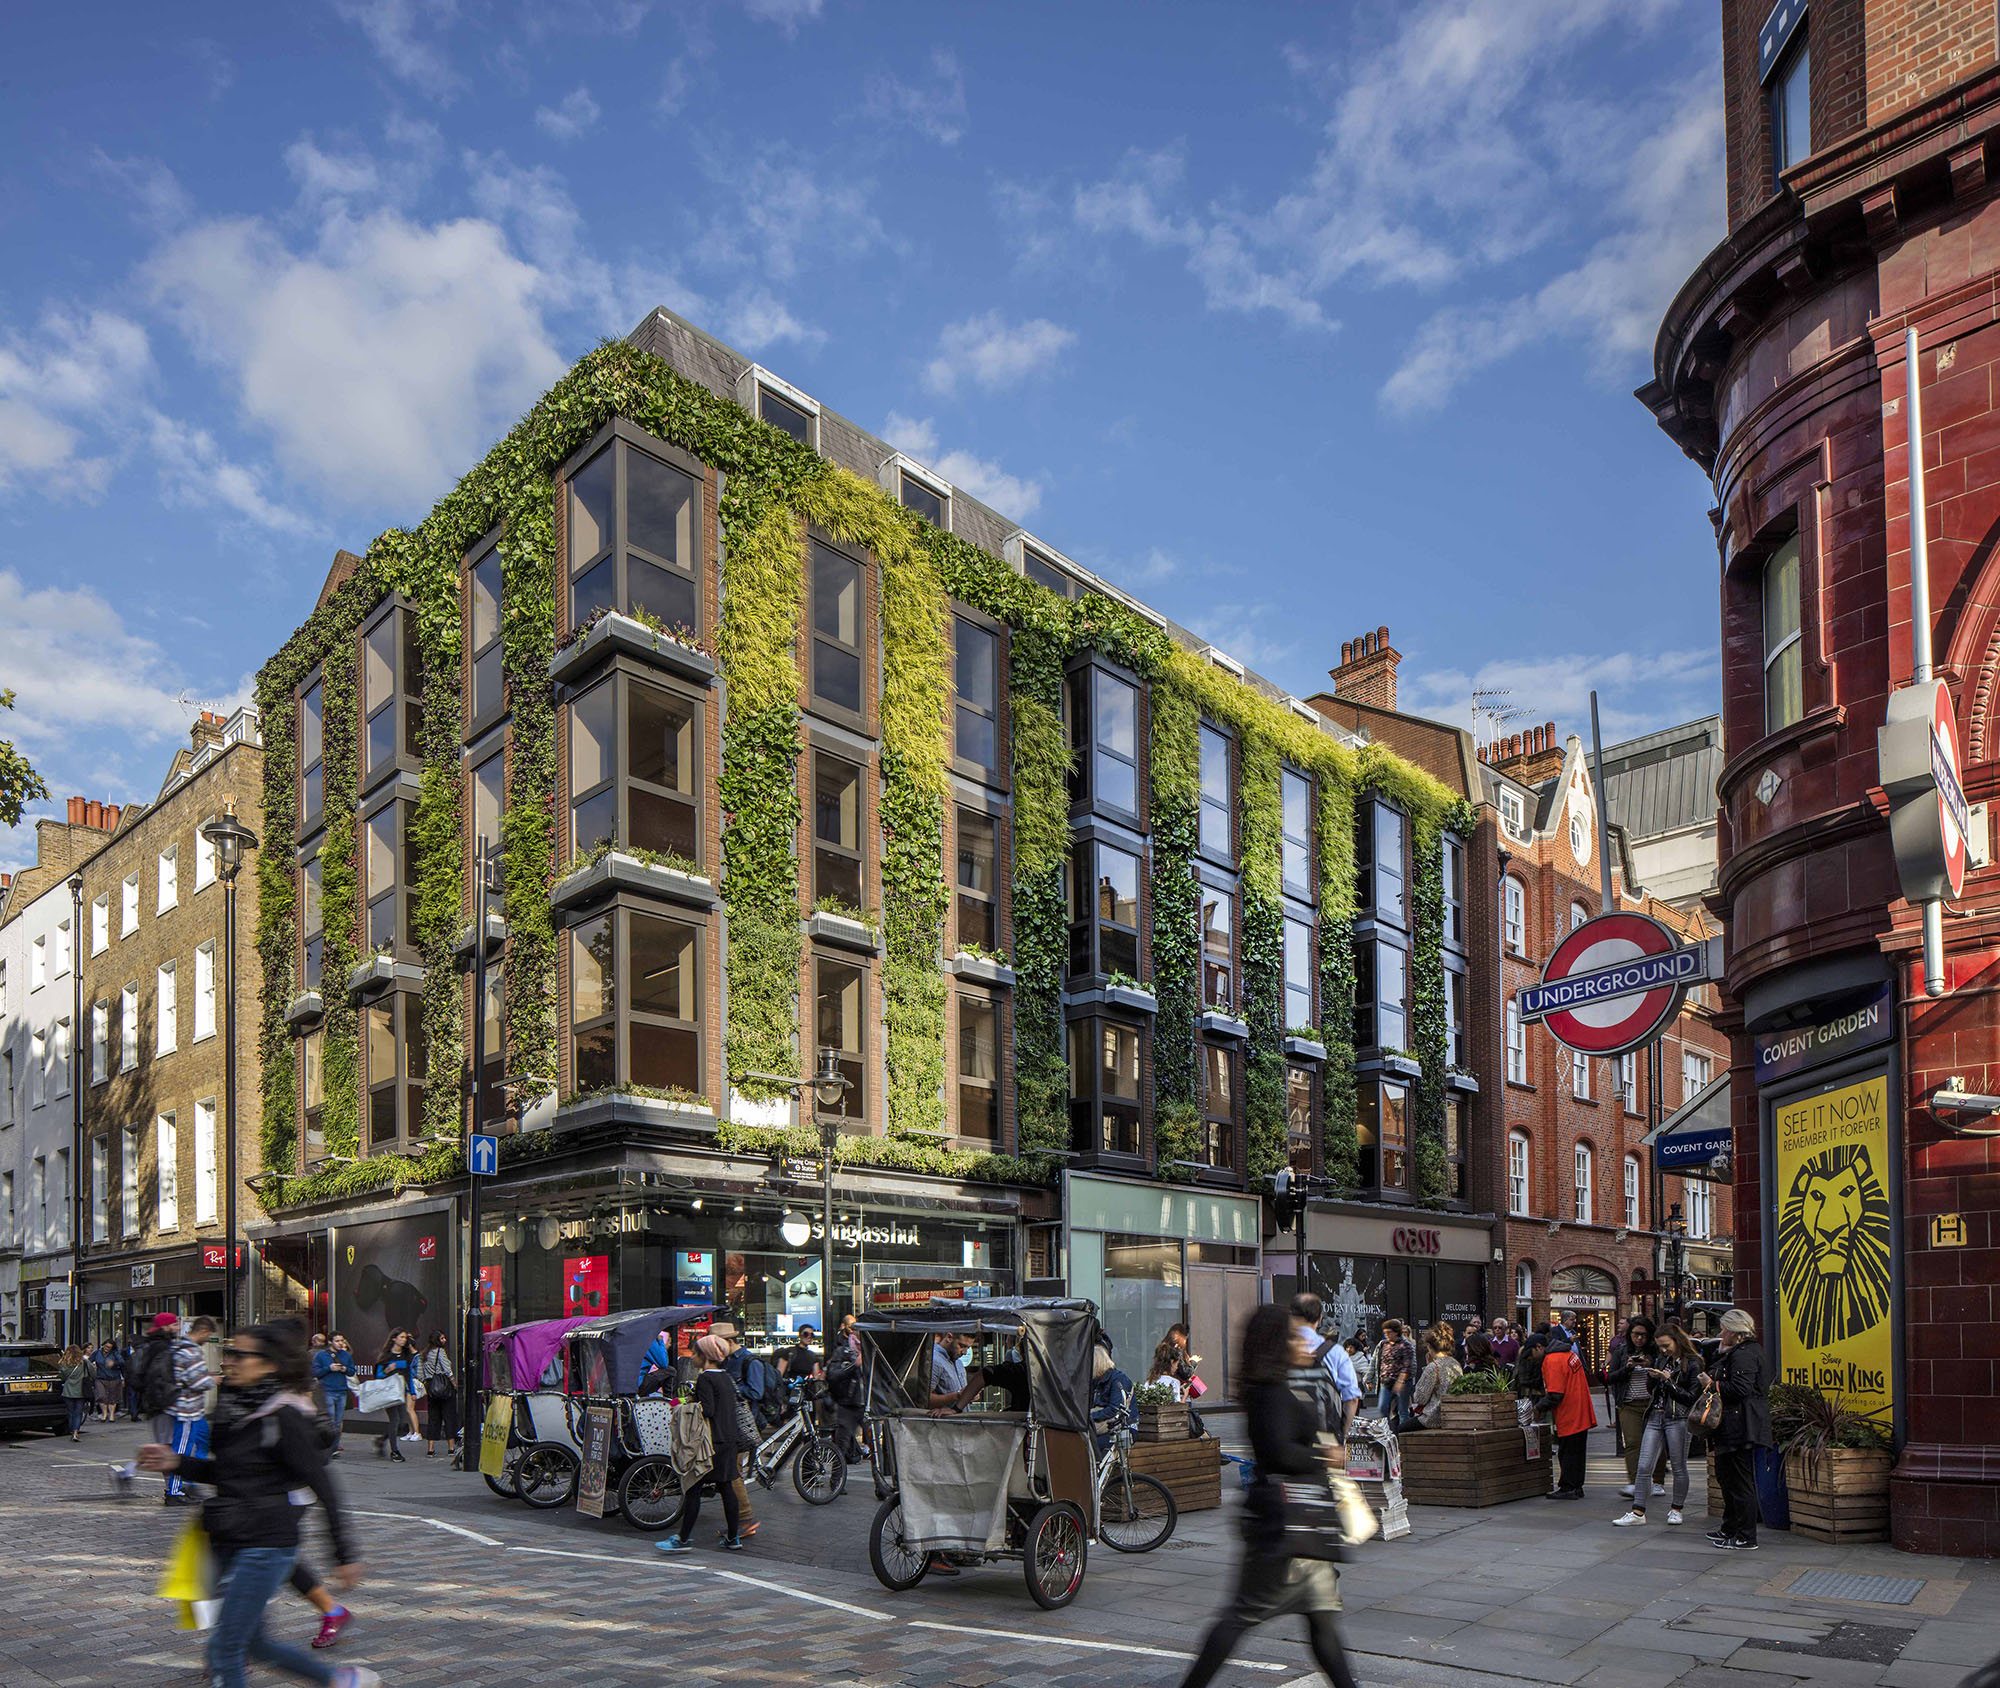 Building in England with living green plant walls.